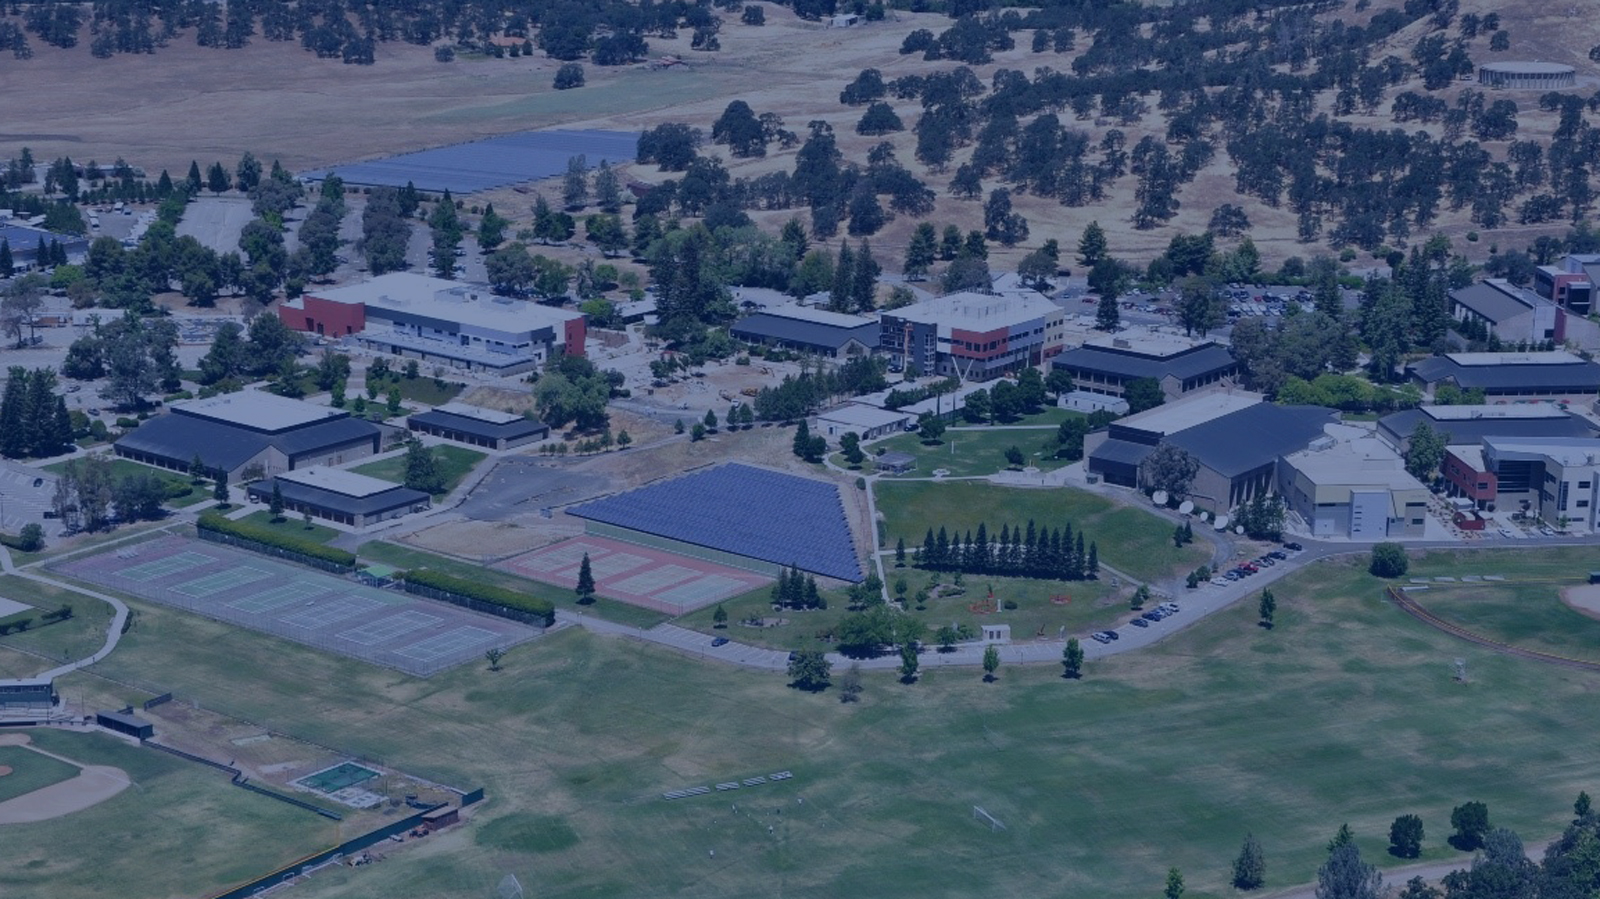 """<h4>Butte College, California</h4> <h5>In 2011, Butte College became the nation's first college campus to become """"grid positive,"""" meaning that the college generated more electricity than it used, thanks to 25,000 solar panels installed since 2005. <a href=""""#one""""><u>Learn more.</u></a> </h5> <em>Butte College</em>"""